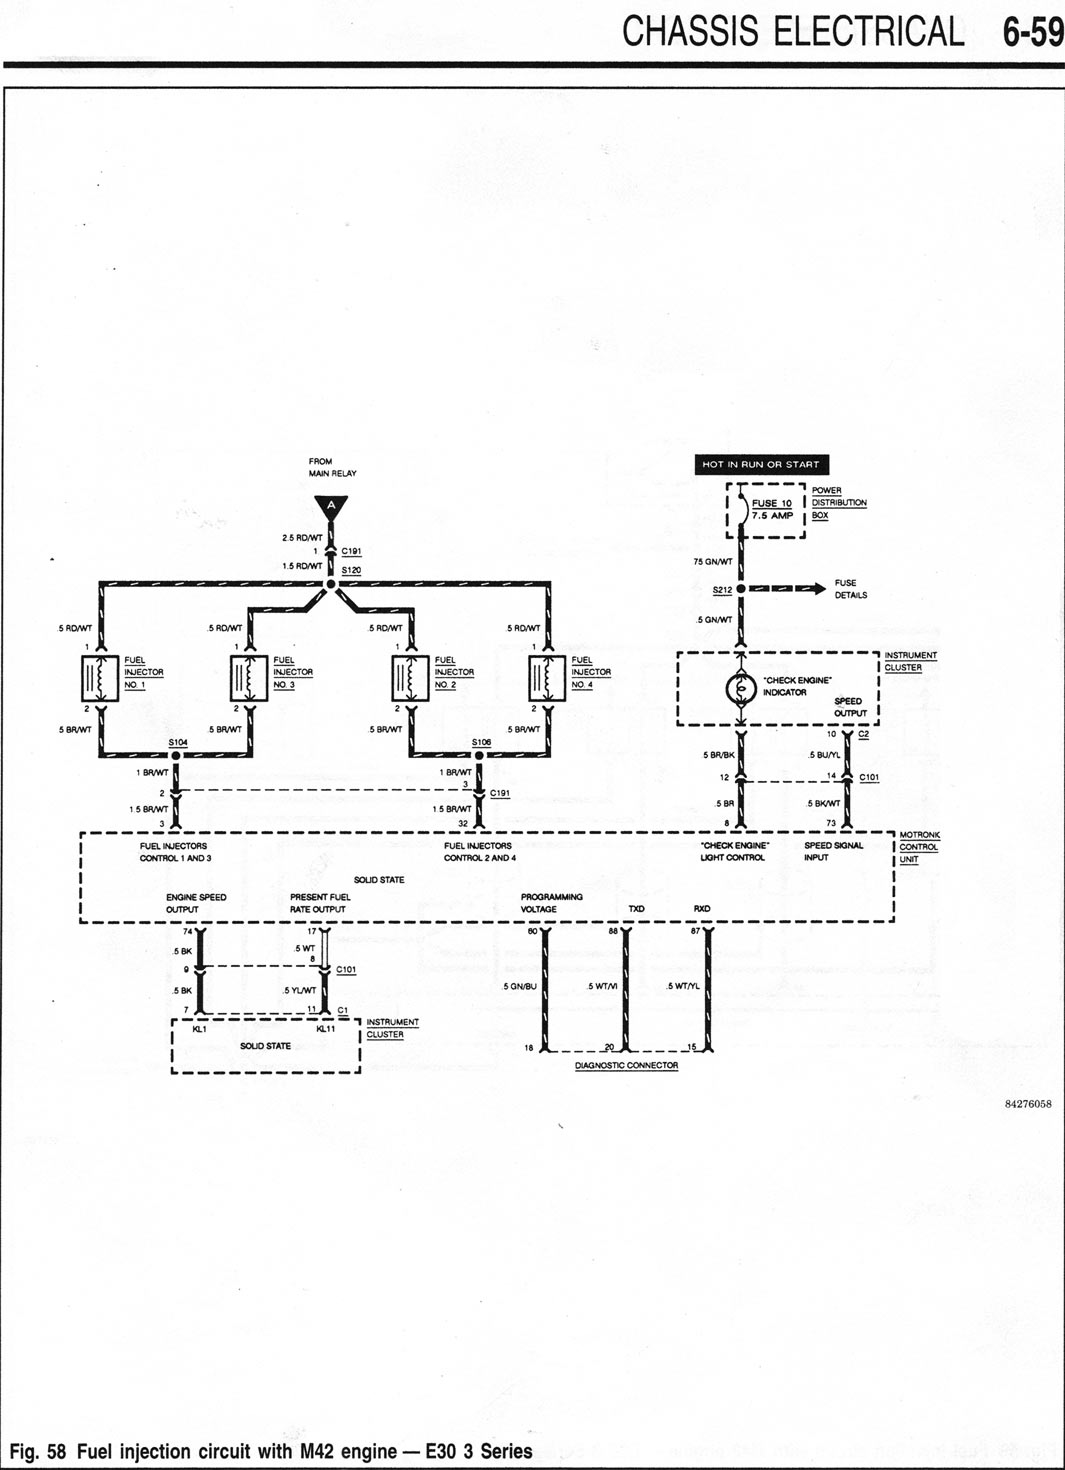 M42 Starter / Fuel Injection Wiring Diagrams